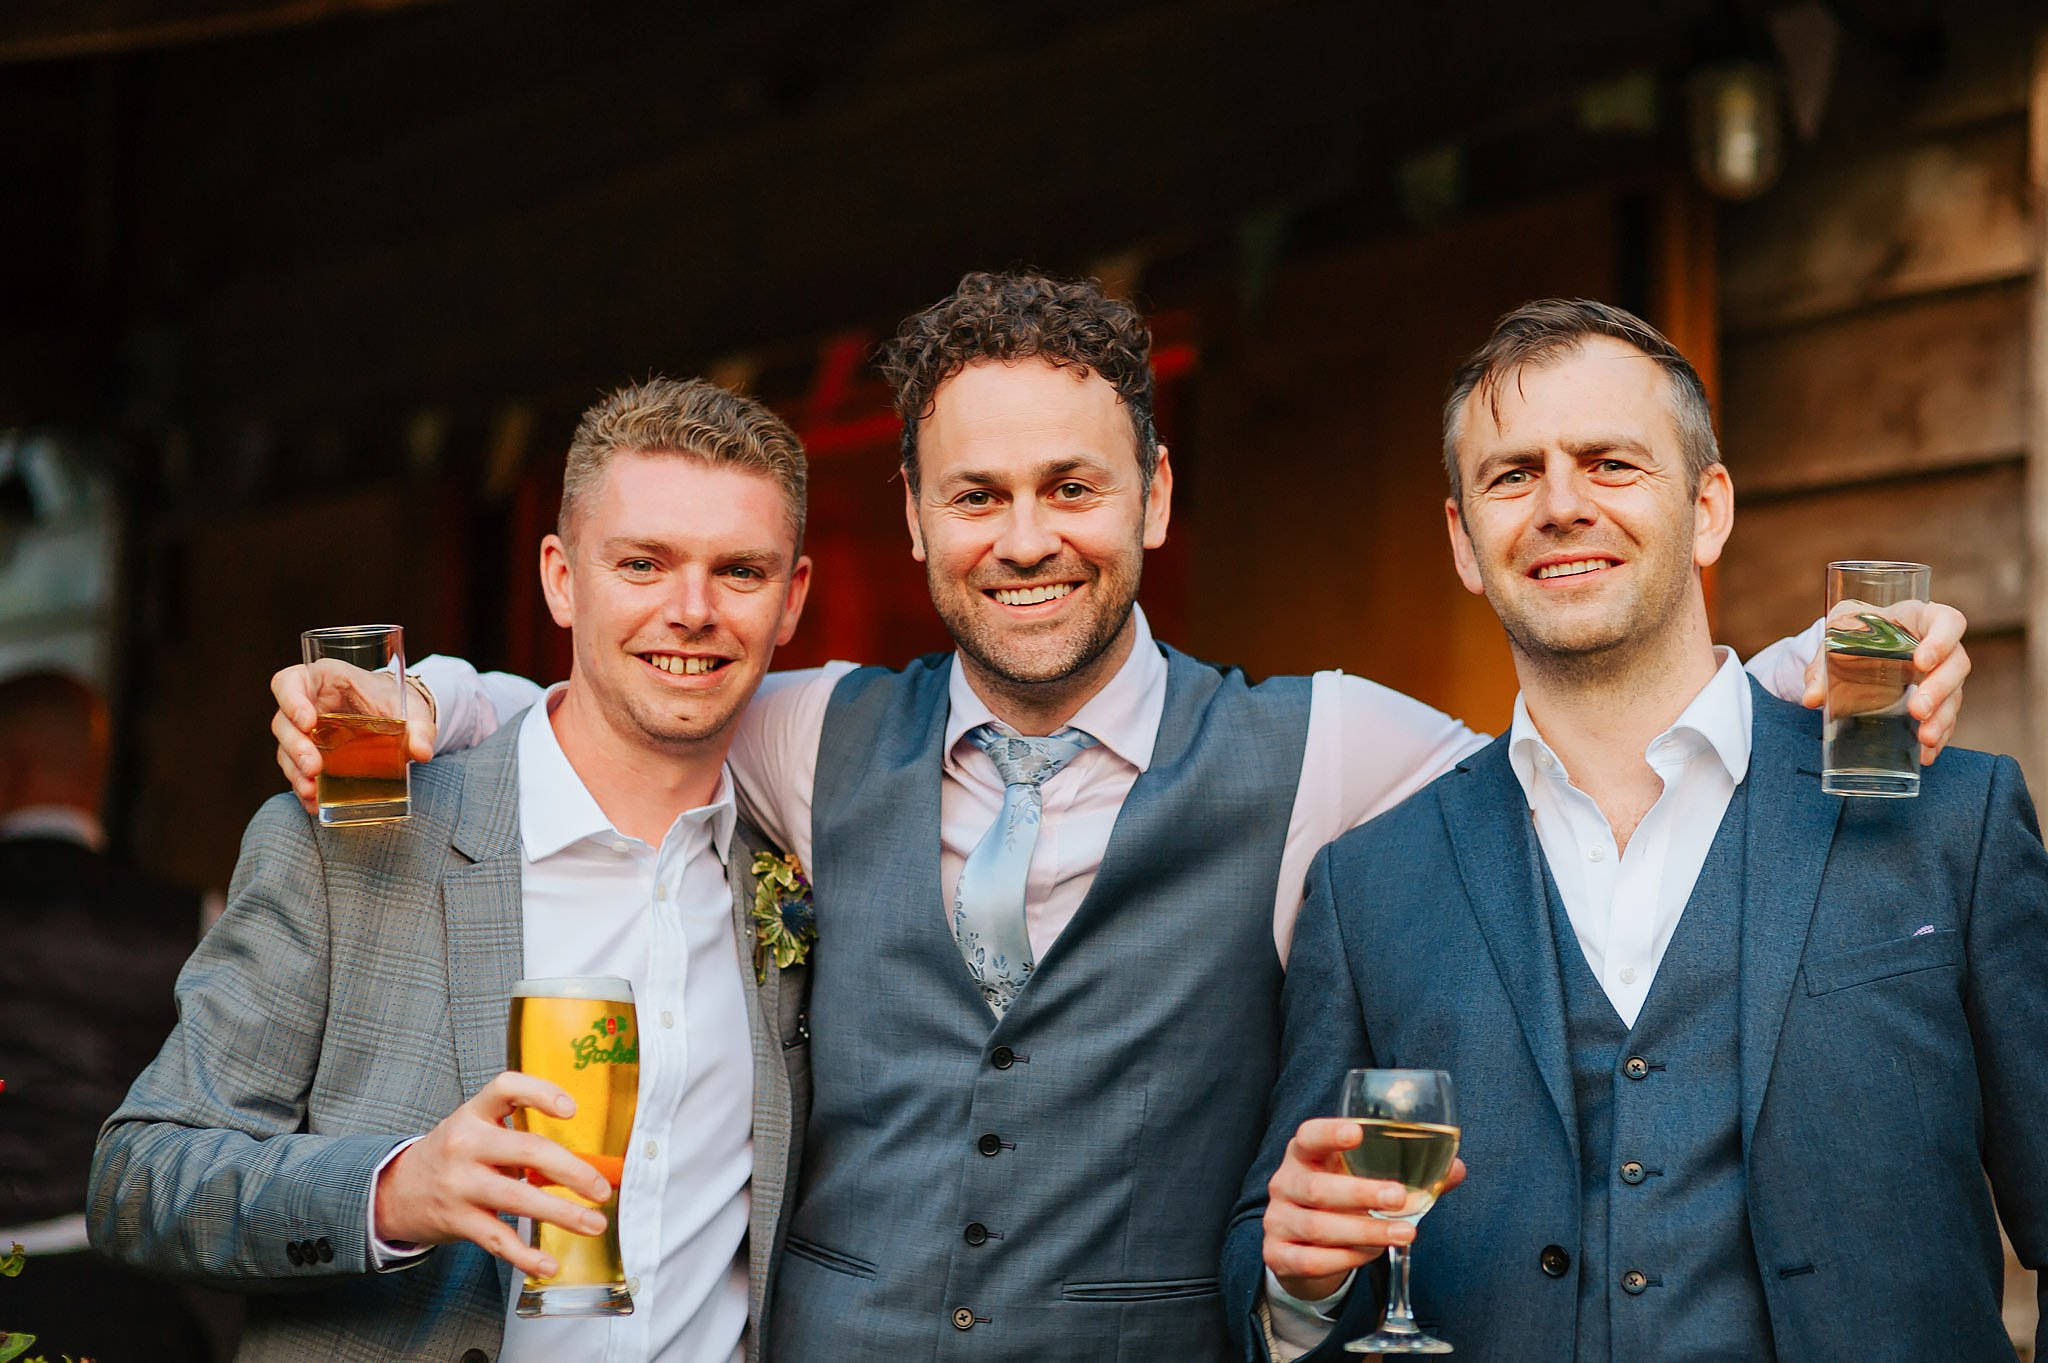 Wedding photography at Hellens Manor in Herefordshire, West Midlands | Shelley + Ian 145